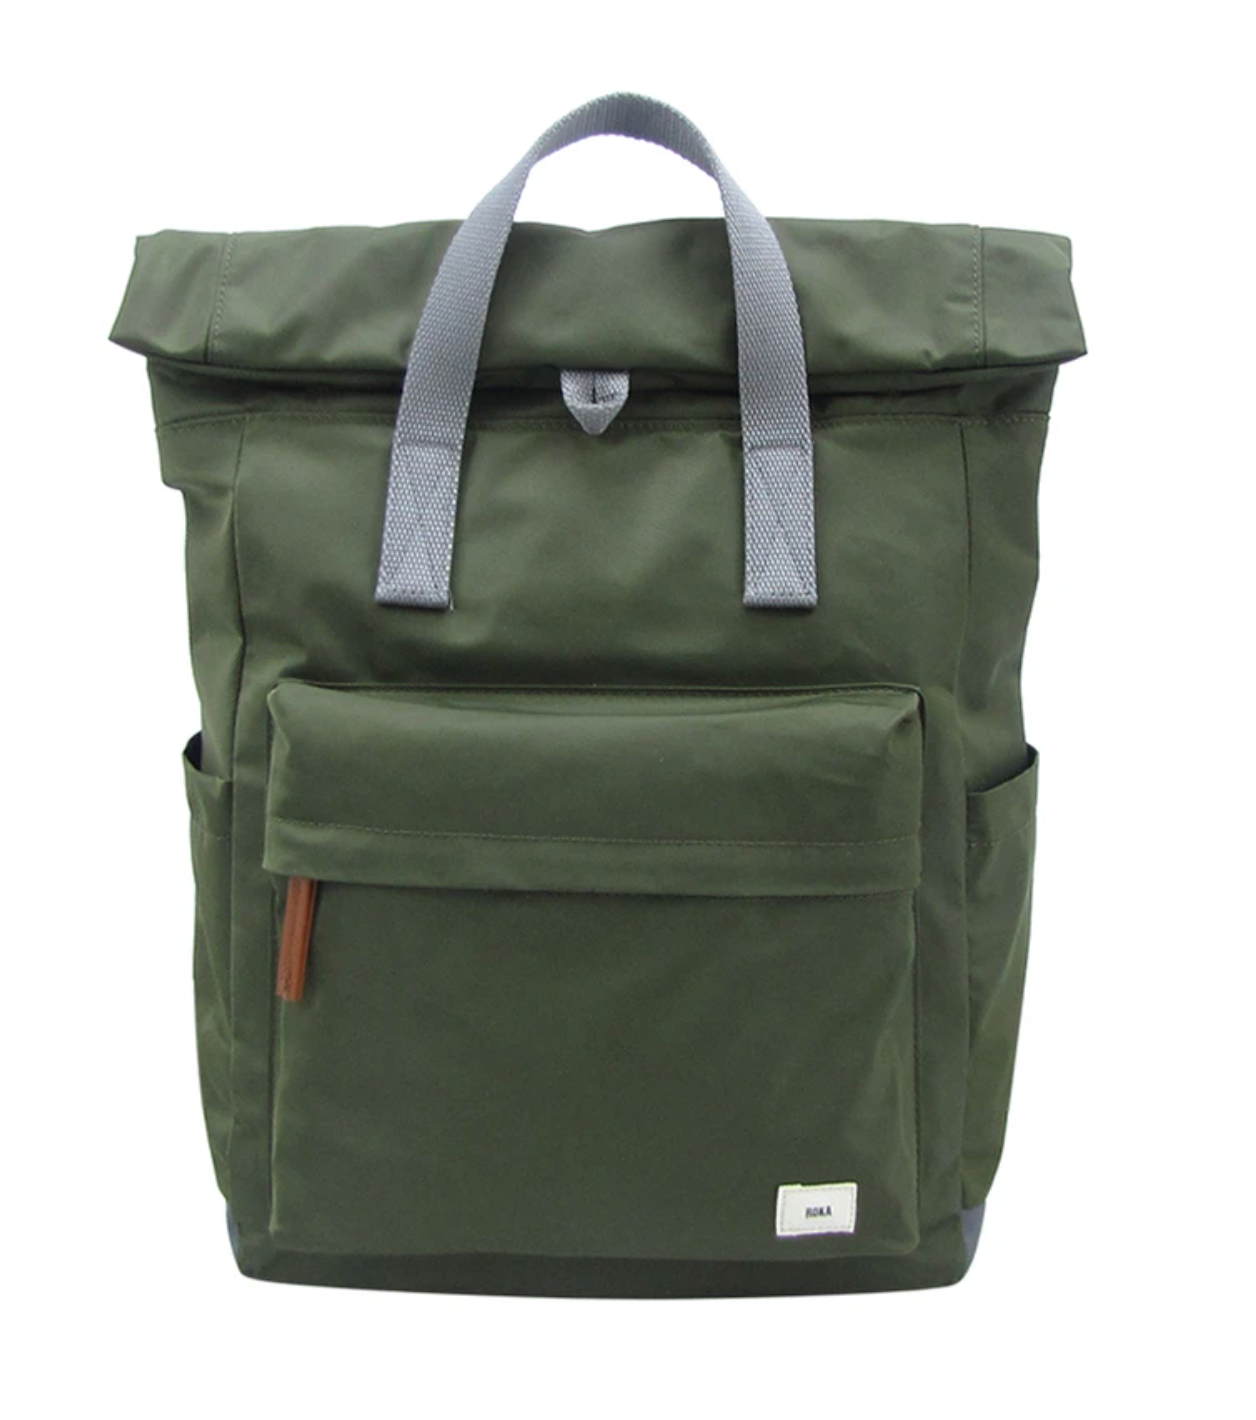 Canfield B Small - Military